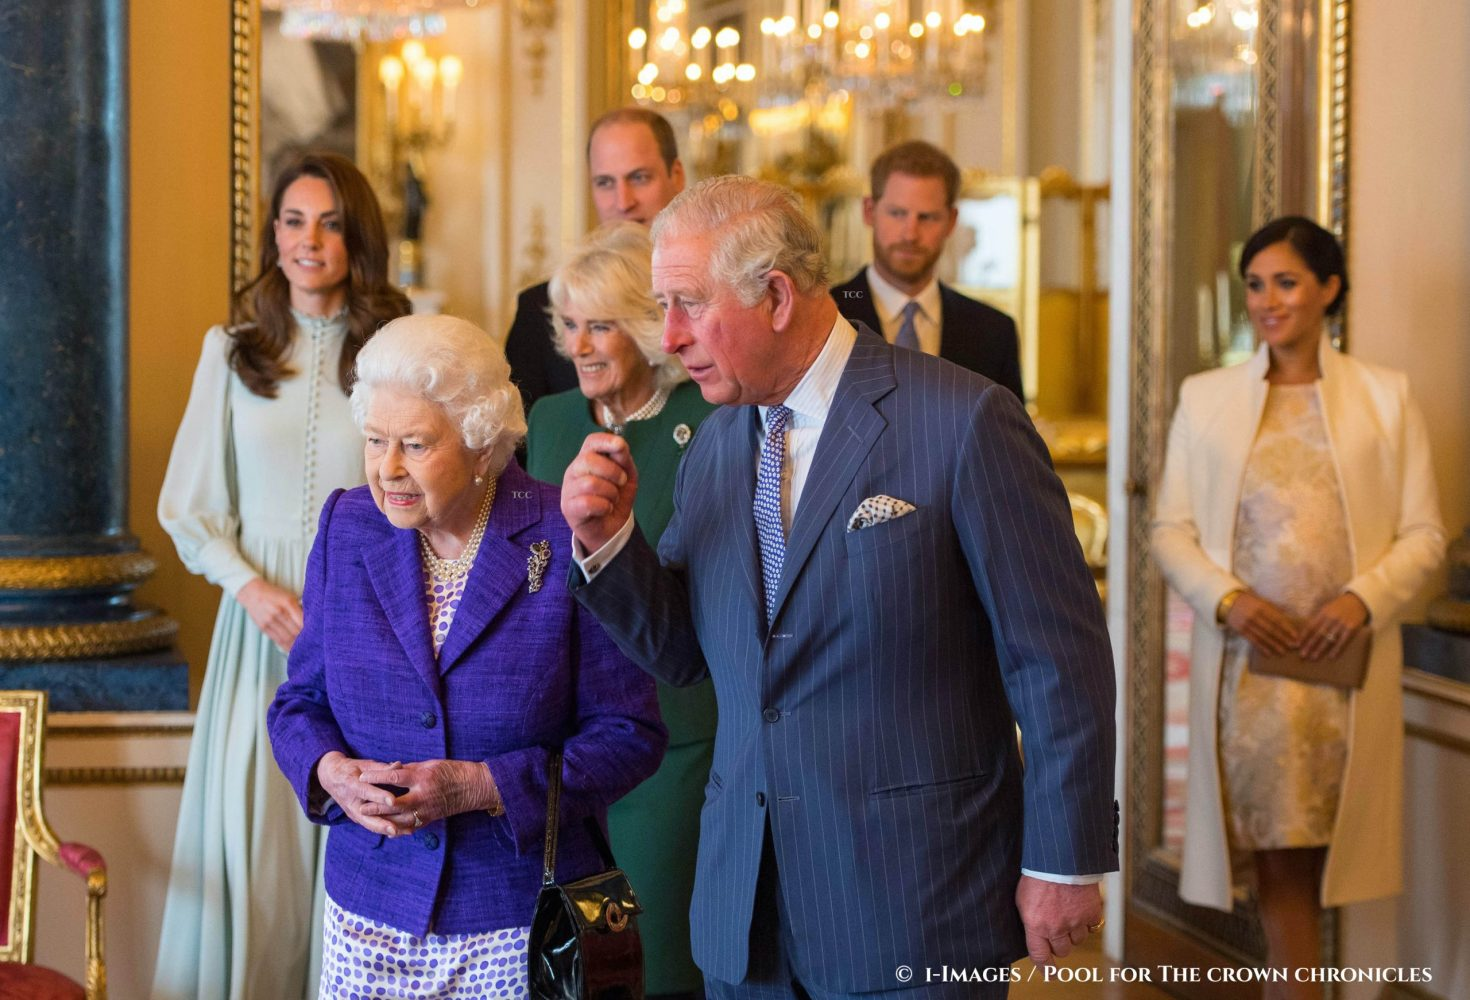 Image ©Licensed to i-Images Picture Agency. 05/03/2019. London, United Kingdom. Fiftieth anniversary of the Investiture of the Prince of Wales.   Queen Elizabeth II and the Prince of Wales, followed by the Duke and Duchess of Cambridge, the Duchess of Cornwall, and the Duke and Duchess of Sussex at a reception at Buckingham Palace in London to mark the fiftieth anniversary of the investiture of the Prince of Wales.   Picture by  i-Images / Pool